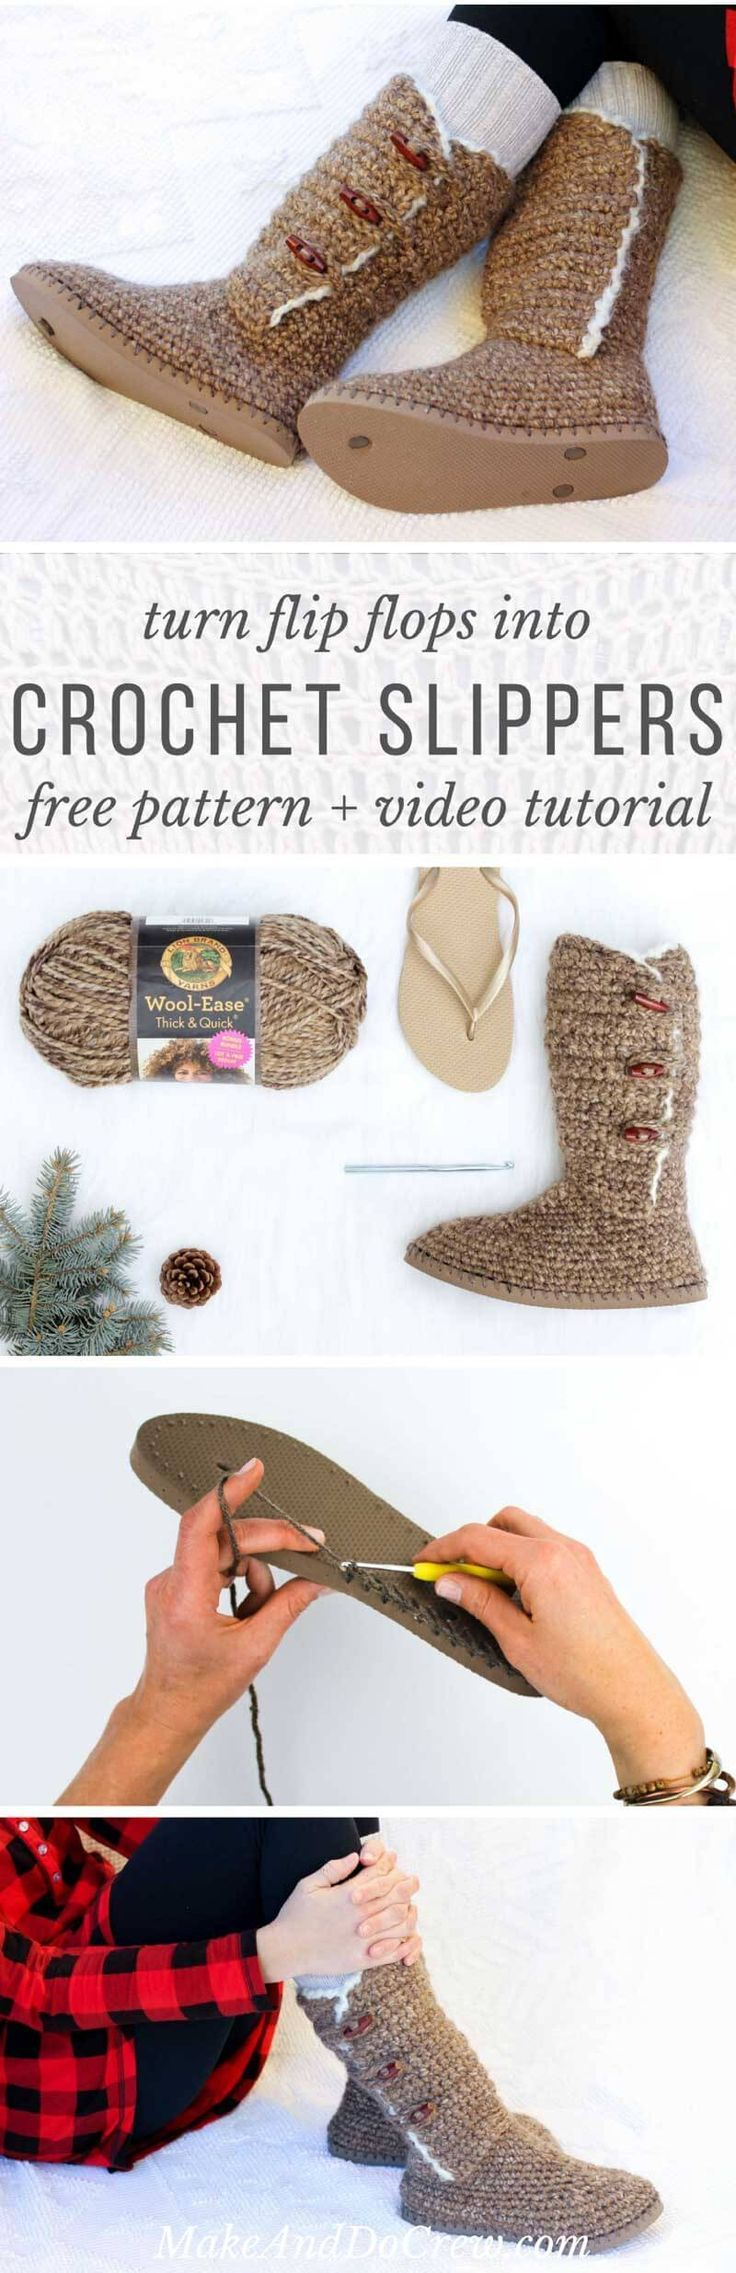 UGG-Style Free Crochet Boots Pattern Using Flip Flops | Bautismo y ...